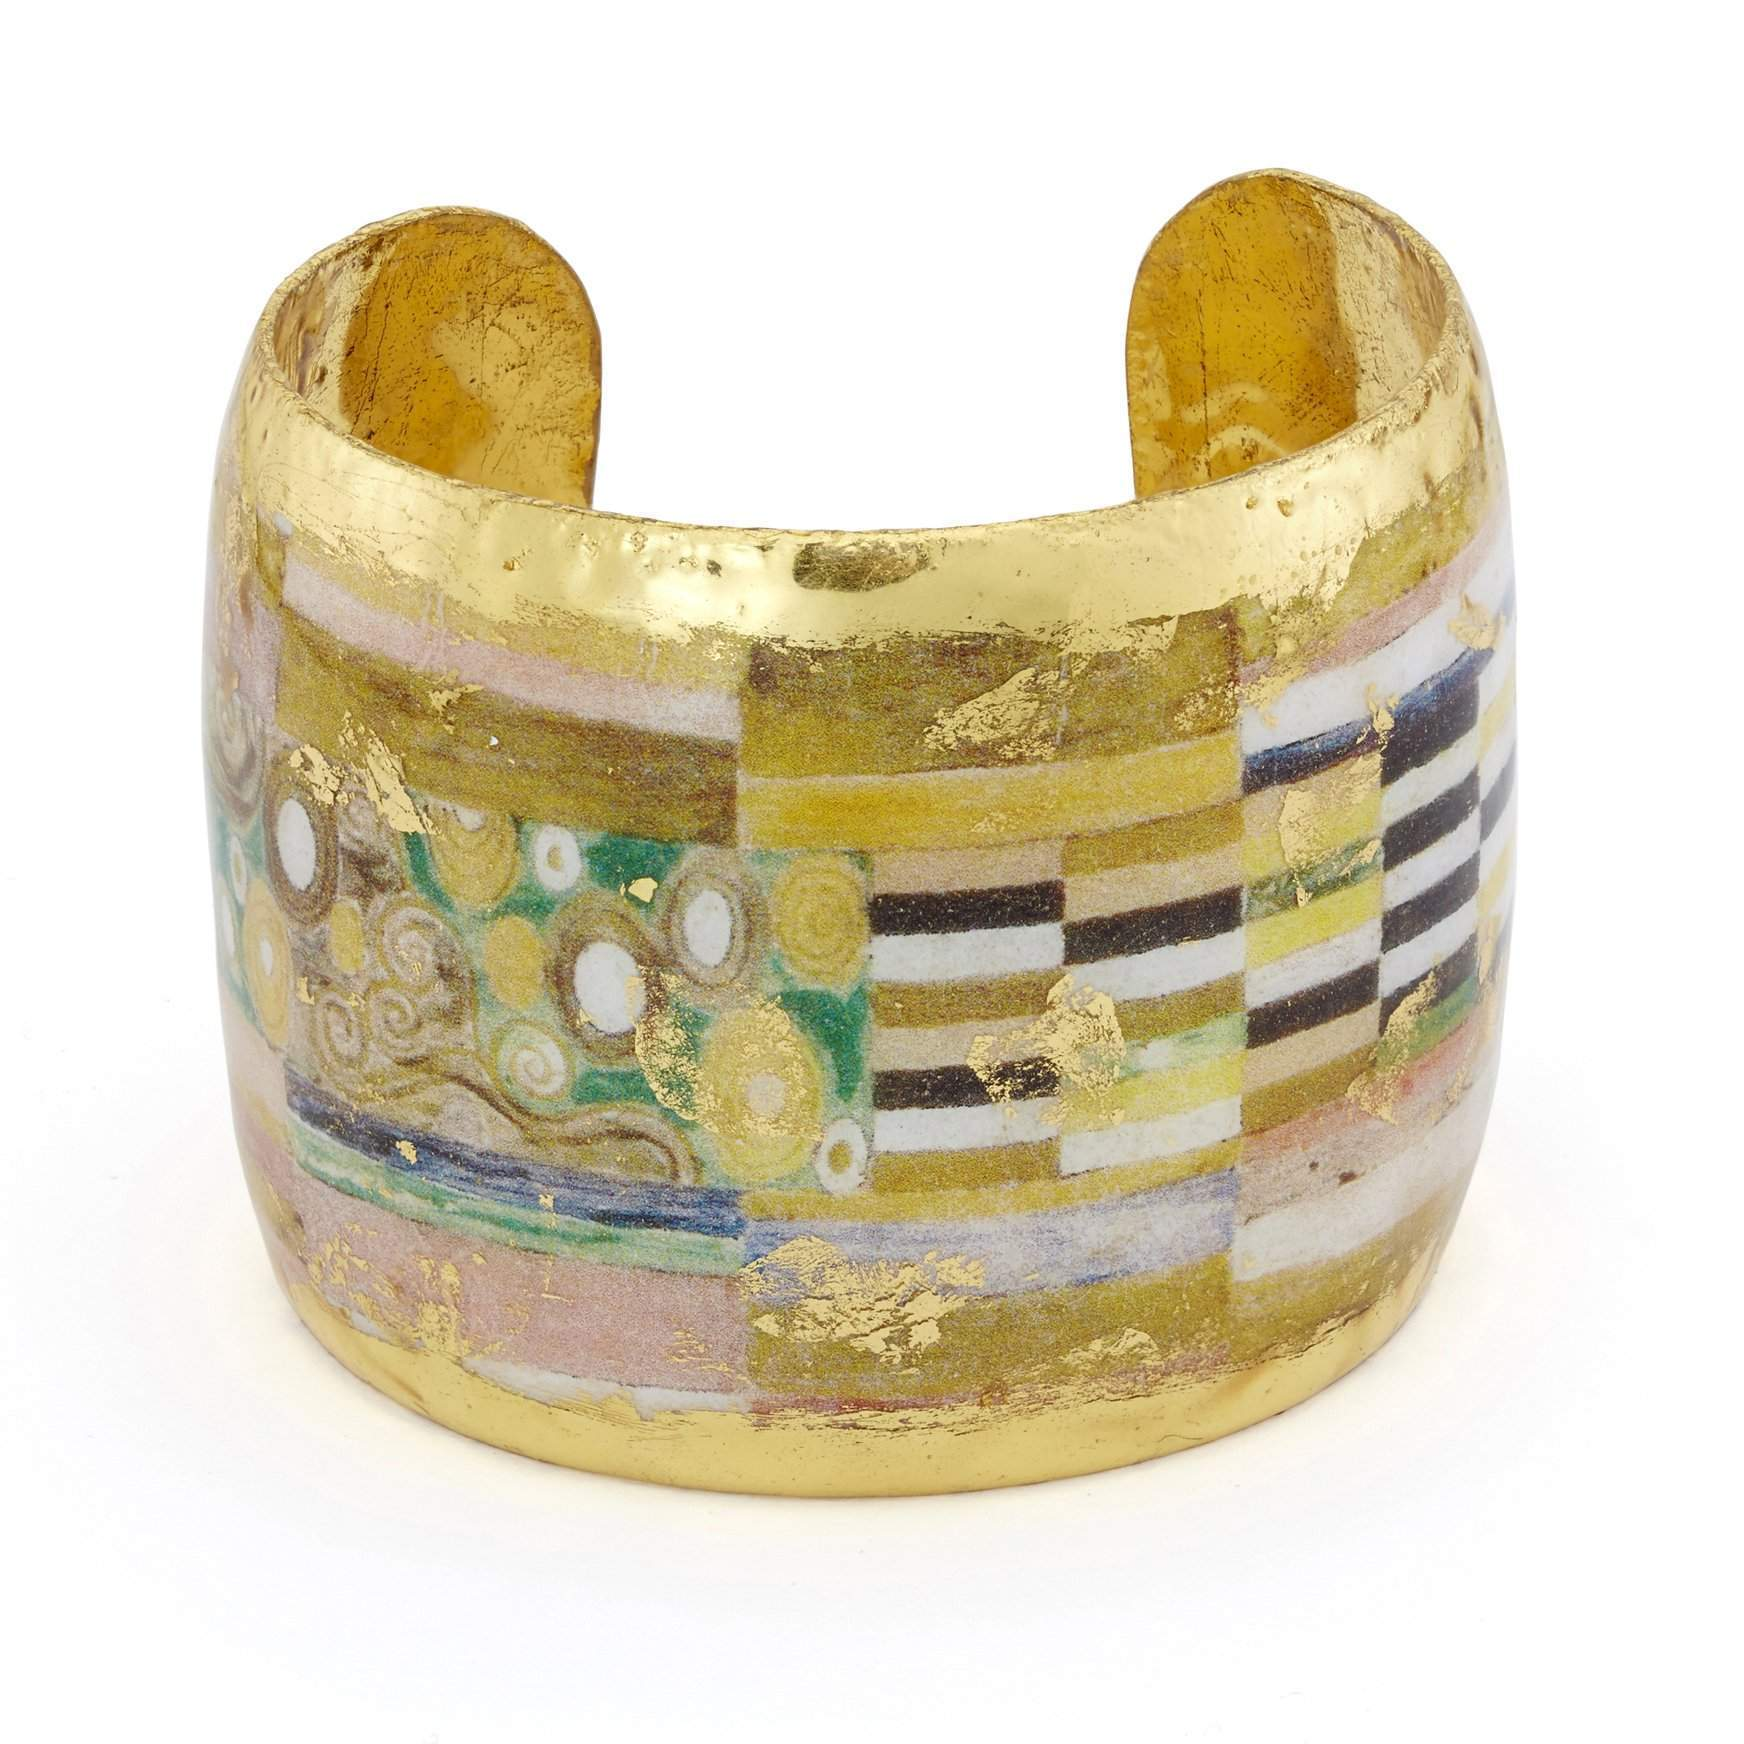 "Munich 2"" Gold Cuff - MU145-Evocateur-Renee Taylor Gallery"